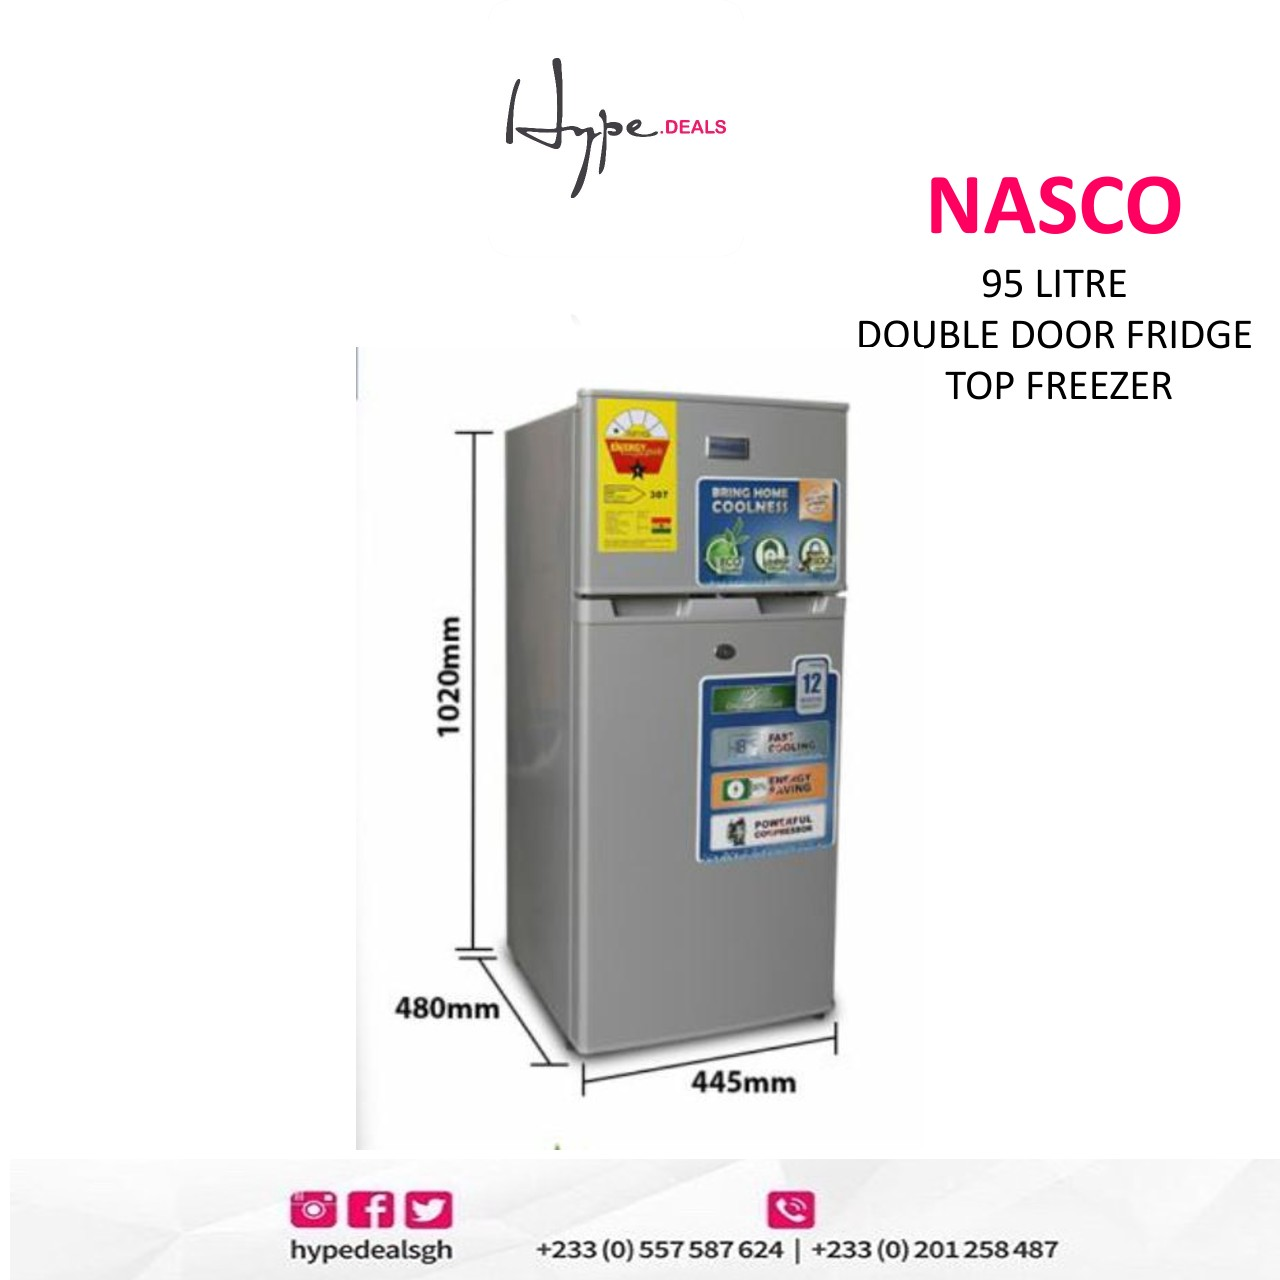 Nasco 95 Litre Double Door Fridge (Top Freezer)